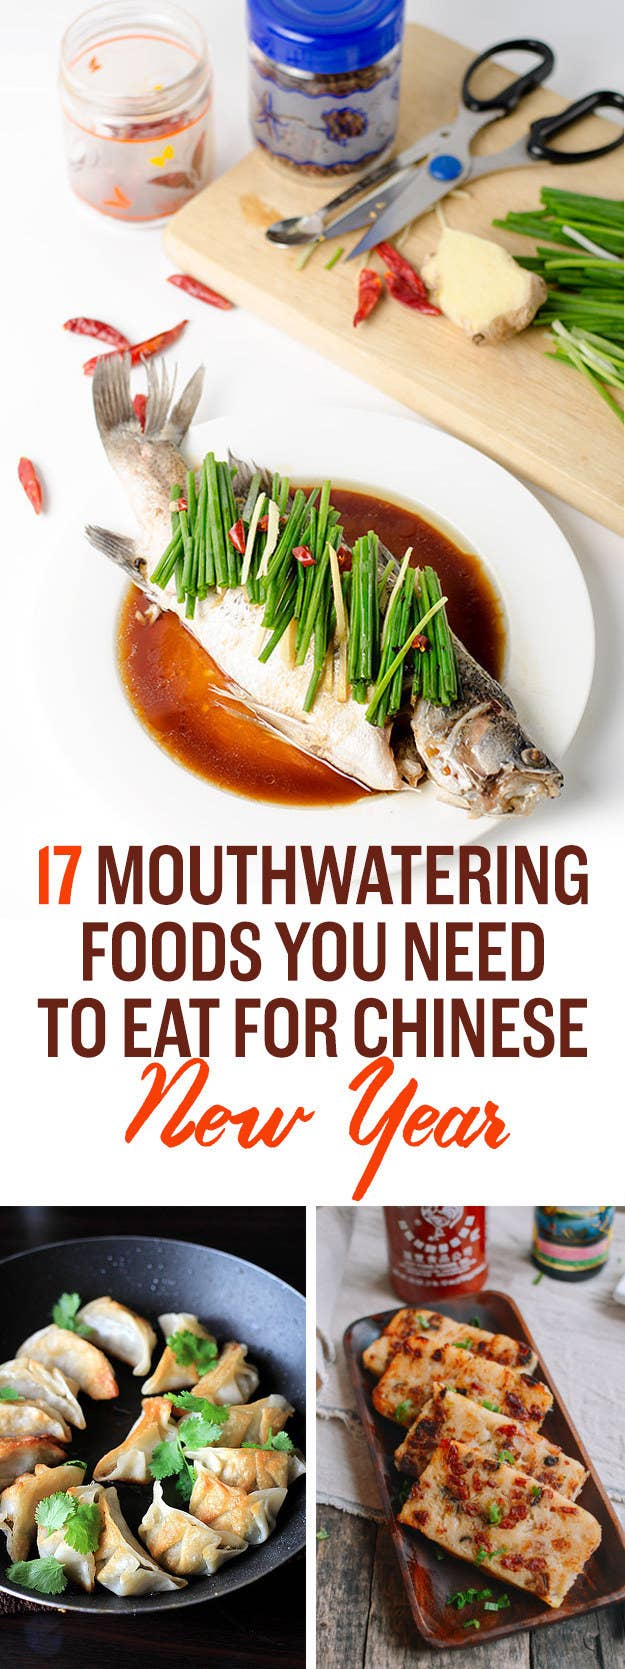 17 mouthwatering foods you need to eat for lunar new year share on facebook share forumfinder Gallery